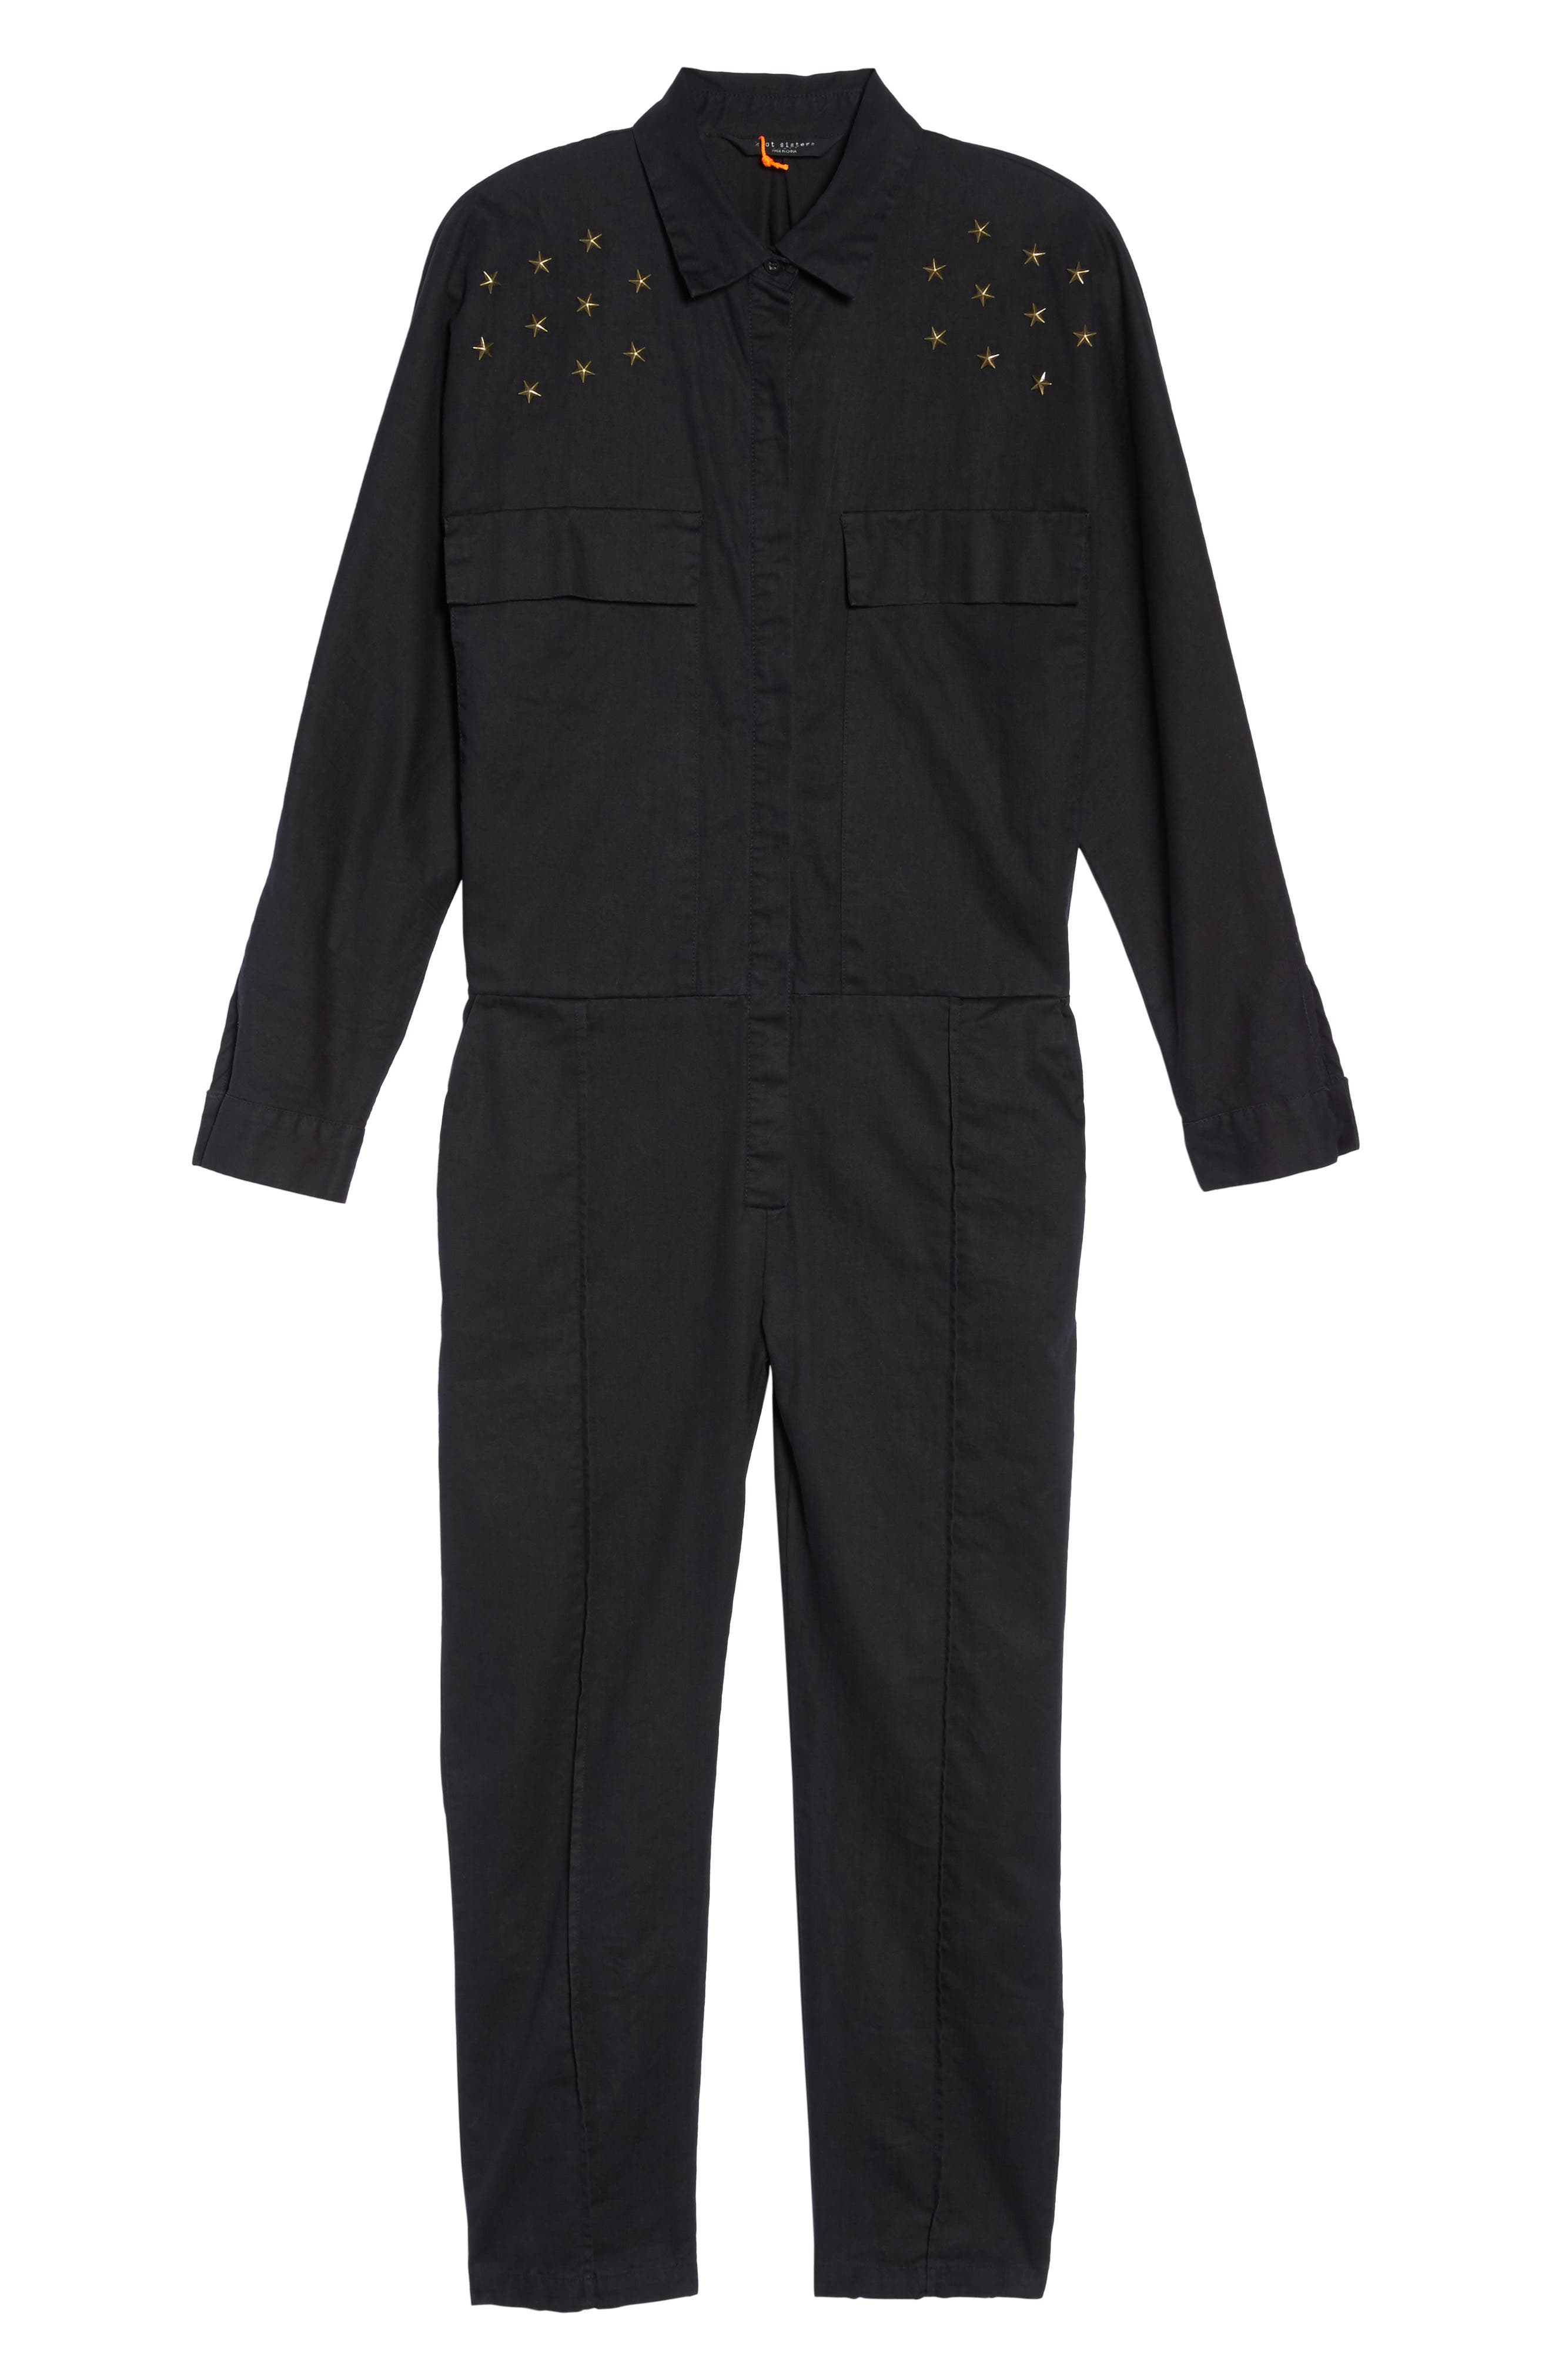 Honor Coveralls,                             Alternate thumbnail 6, color,                             001